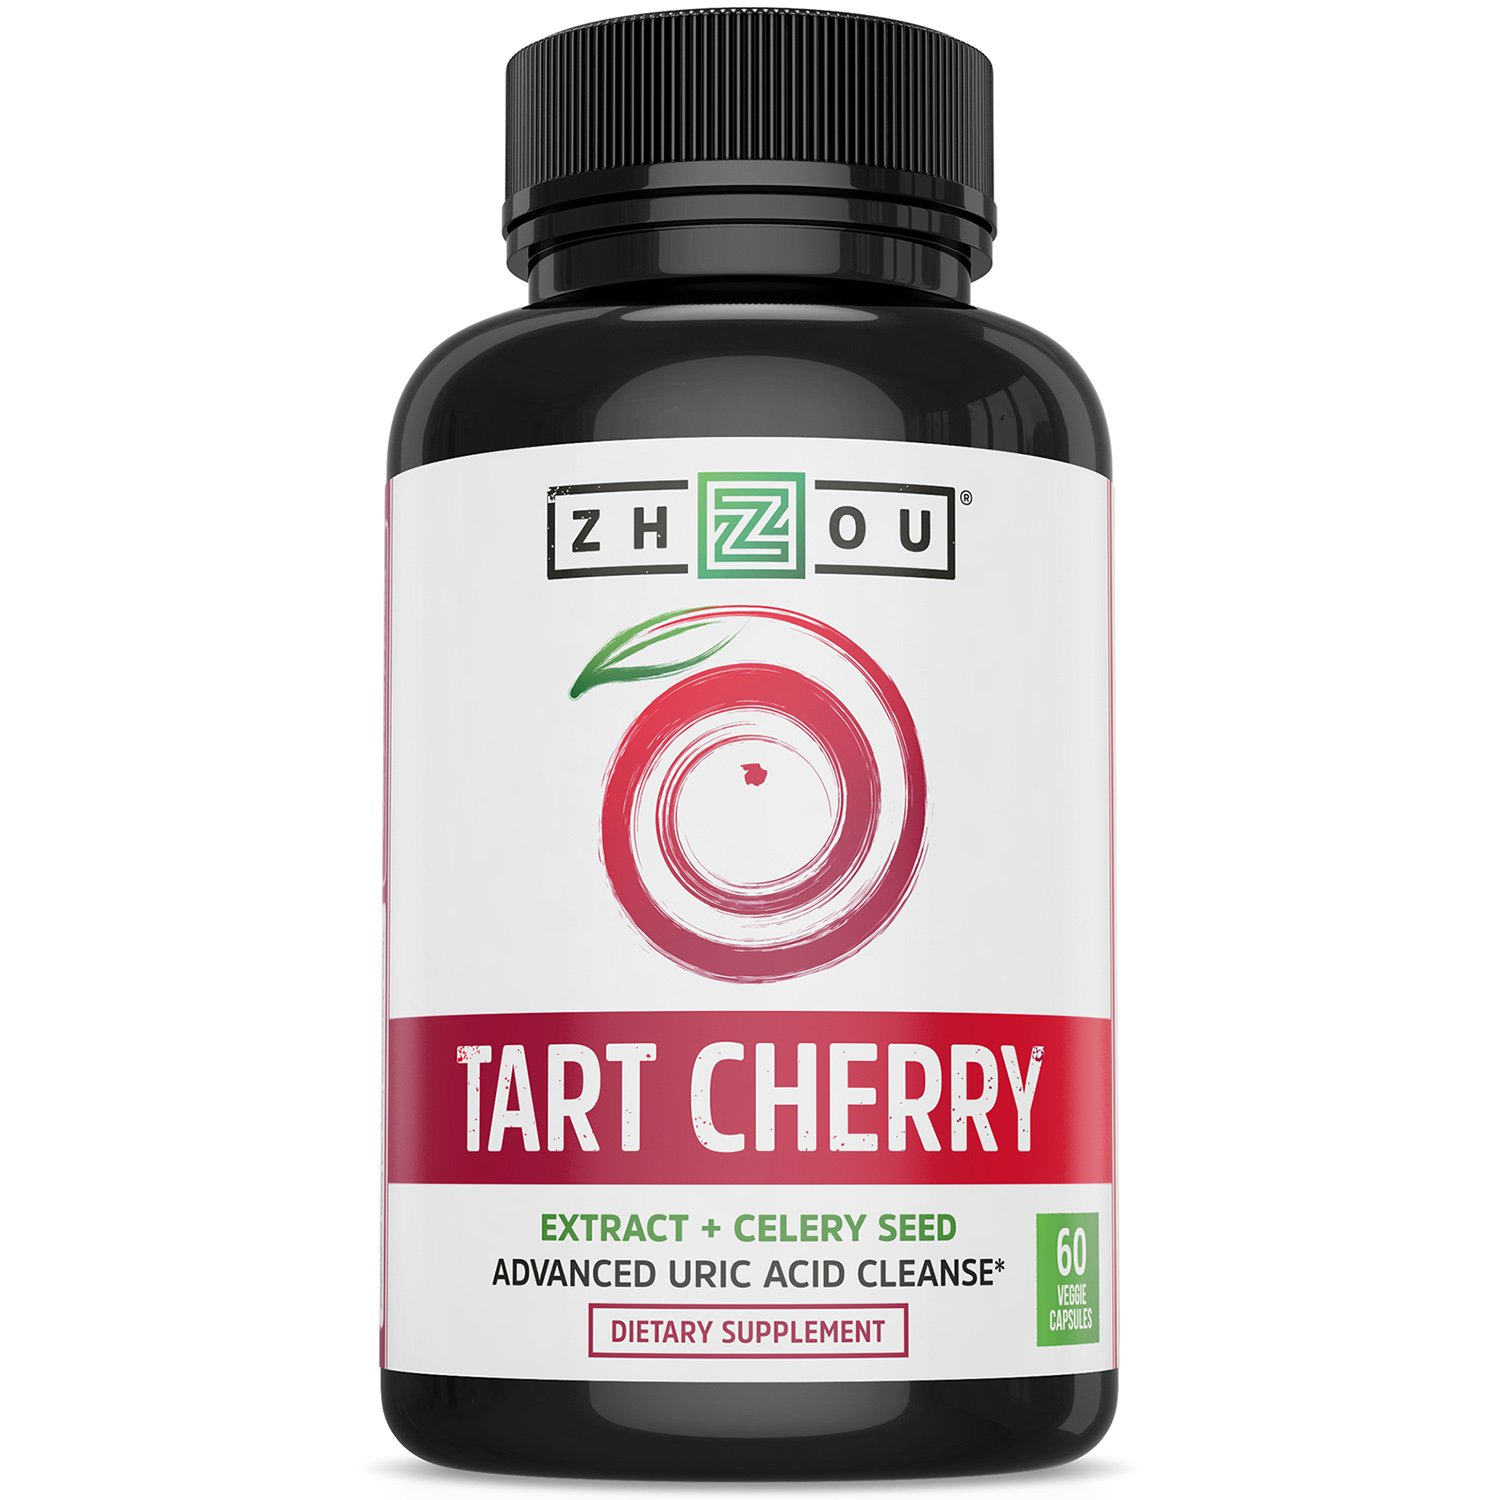 Tart Cherry Extract Capsules with Celery Seed - Advanced Uric Acid Cleanse for Joint Comfort, Healthy Sleep Cycles and Muscle Recovery - Potent Polyphenols Supplement - 60 Veggie Capsules